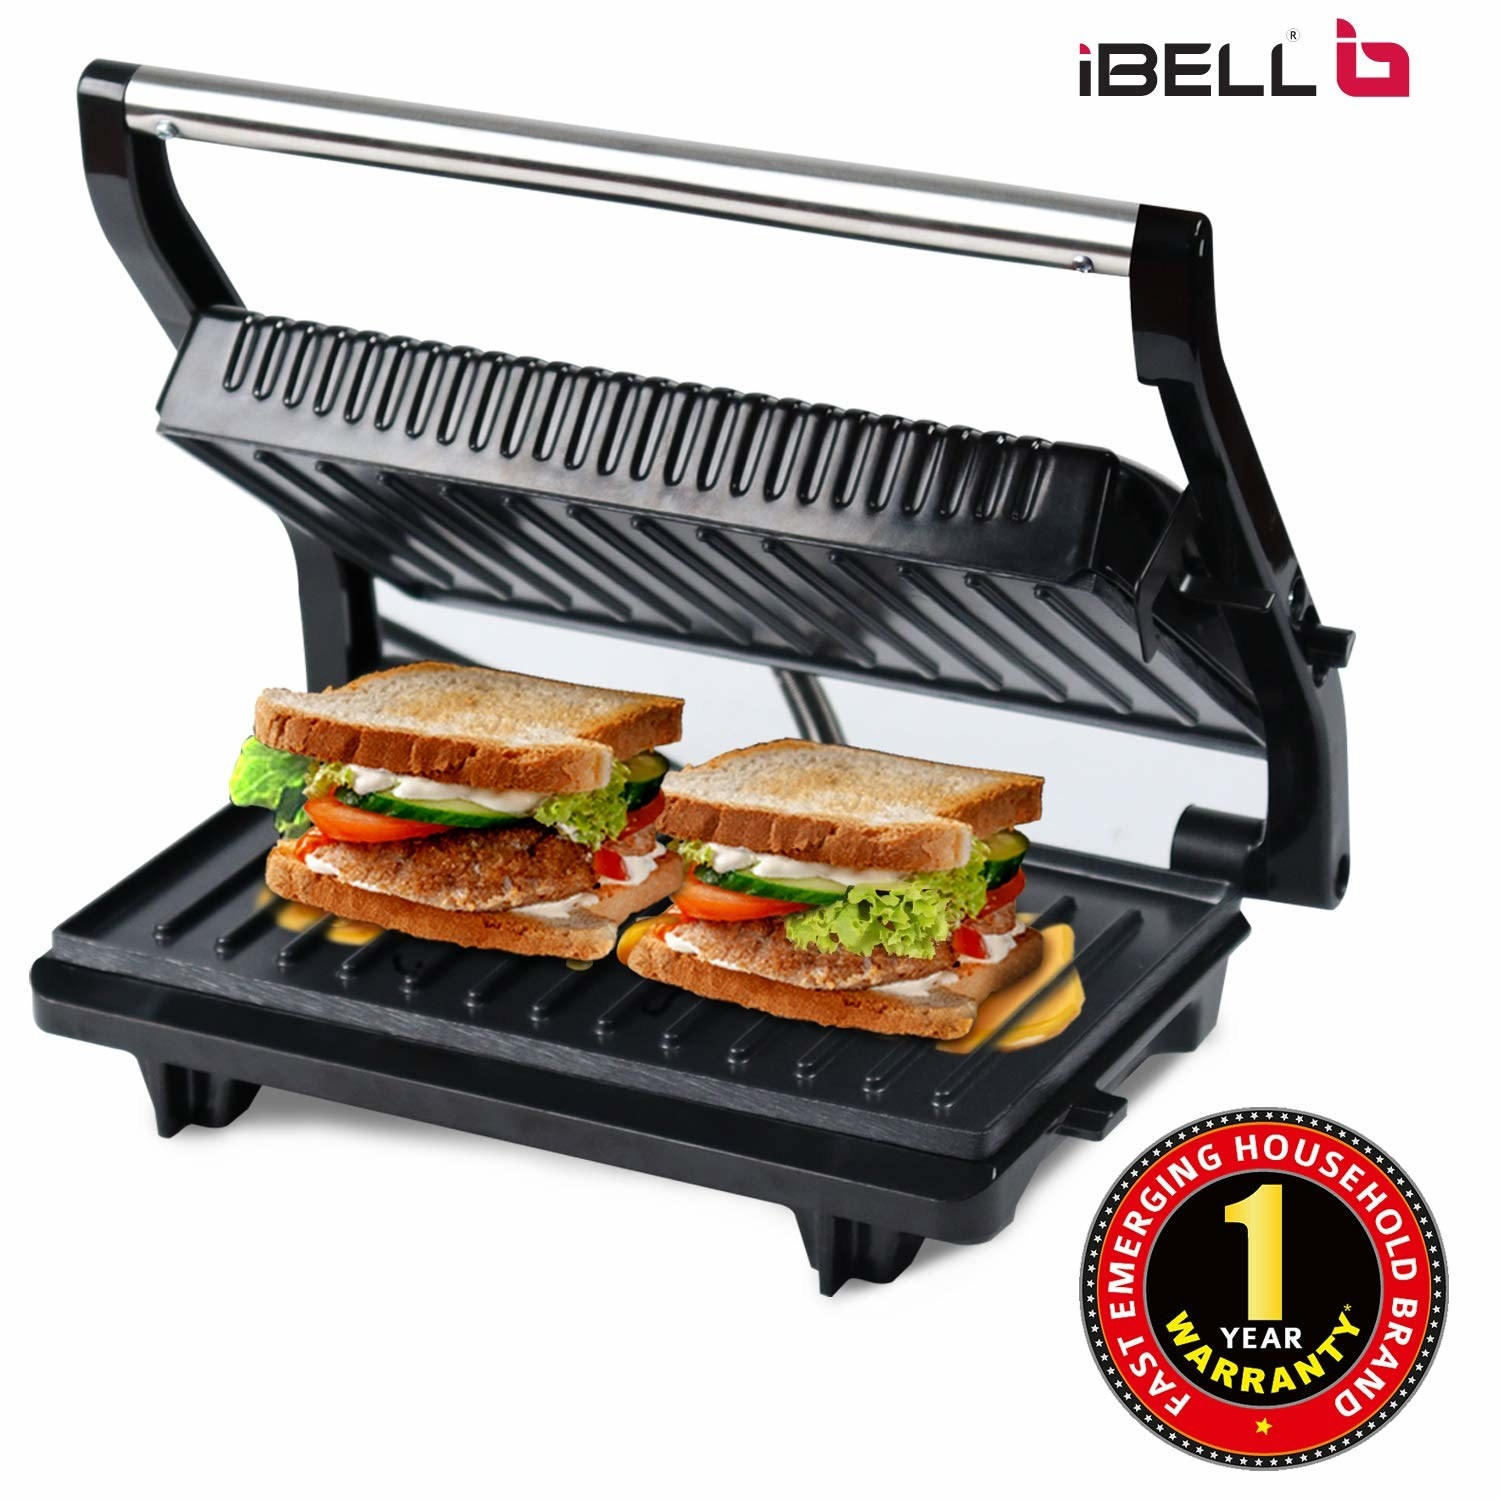 The panini press pictured with two sandwiches in it.